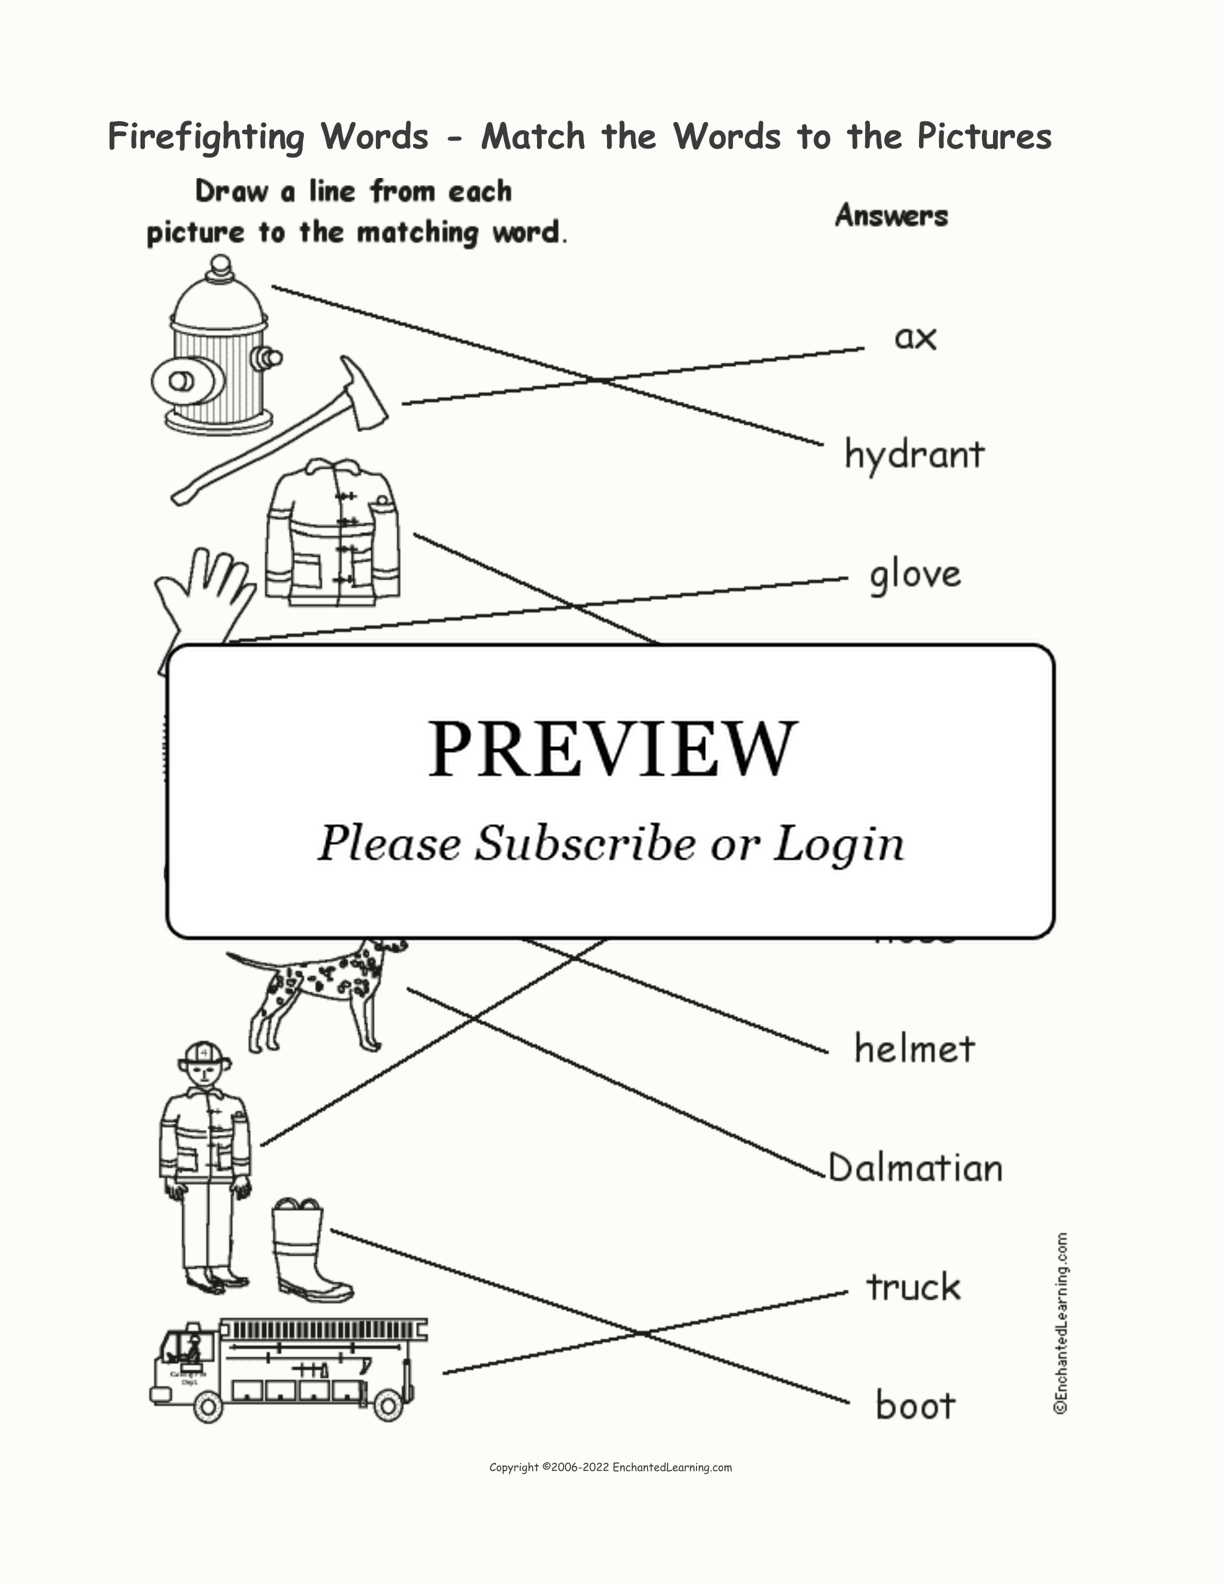 Firefighting Words - Match the Words to the Pictures interactive worksheet page 2